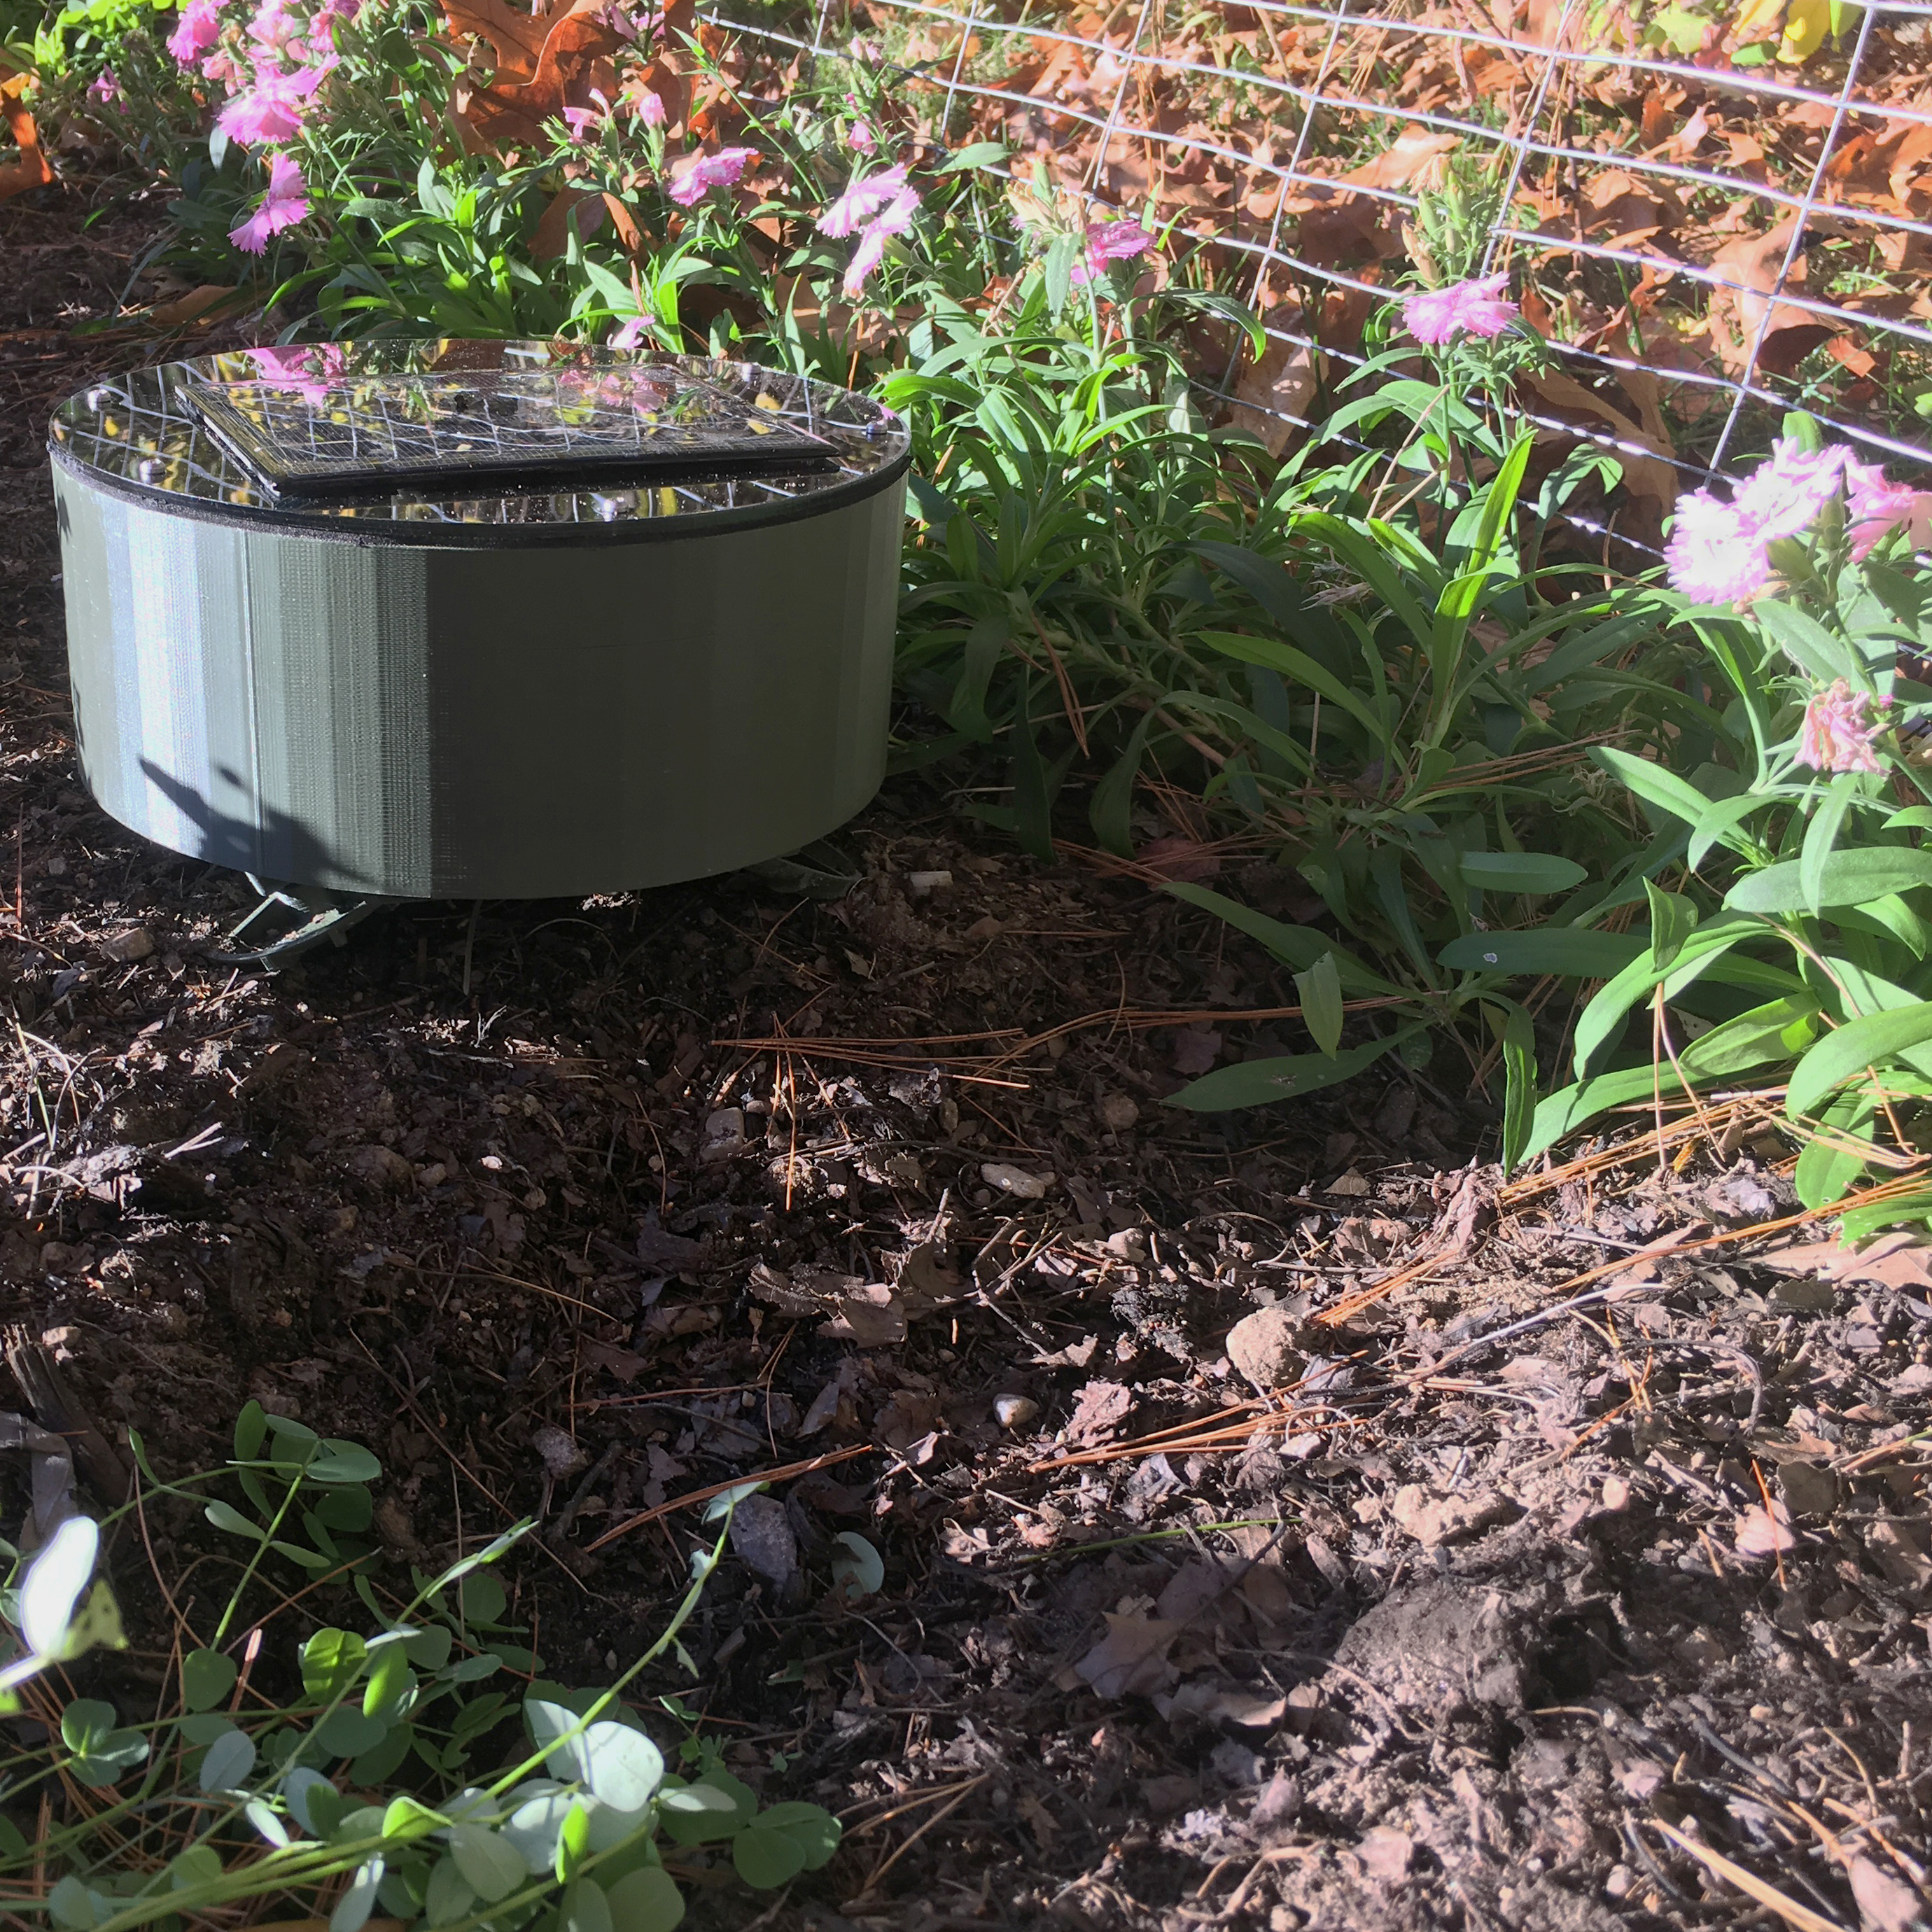 Tertill Is A Solar Powered, Autonomous Weeding Robot From The Startup  Franklin Robotics.